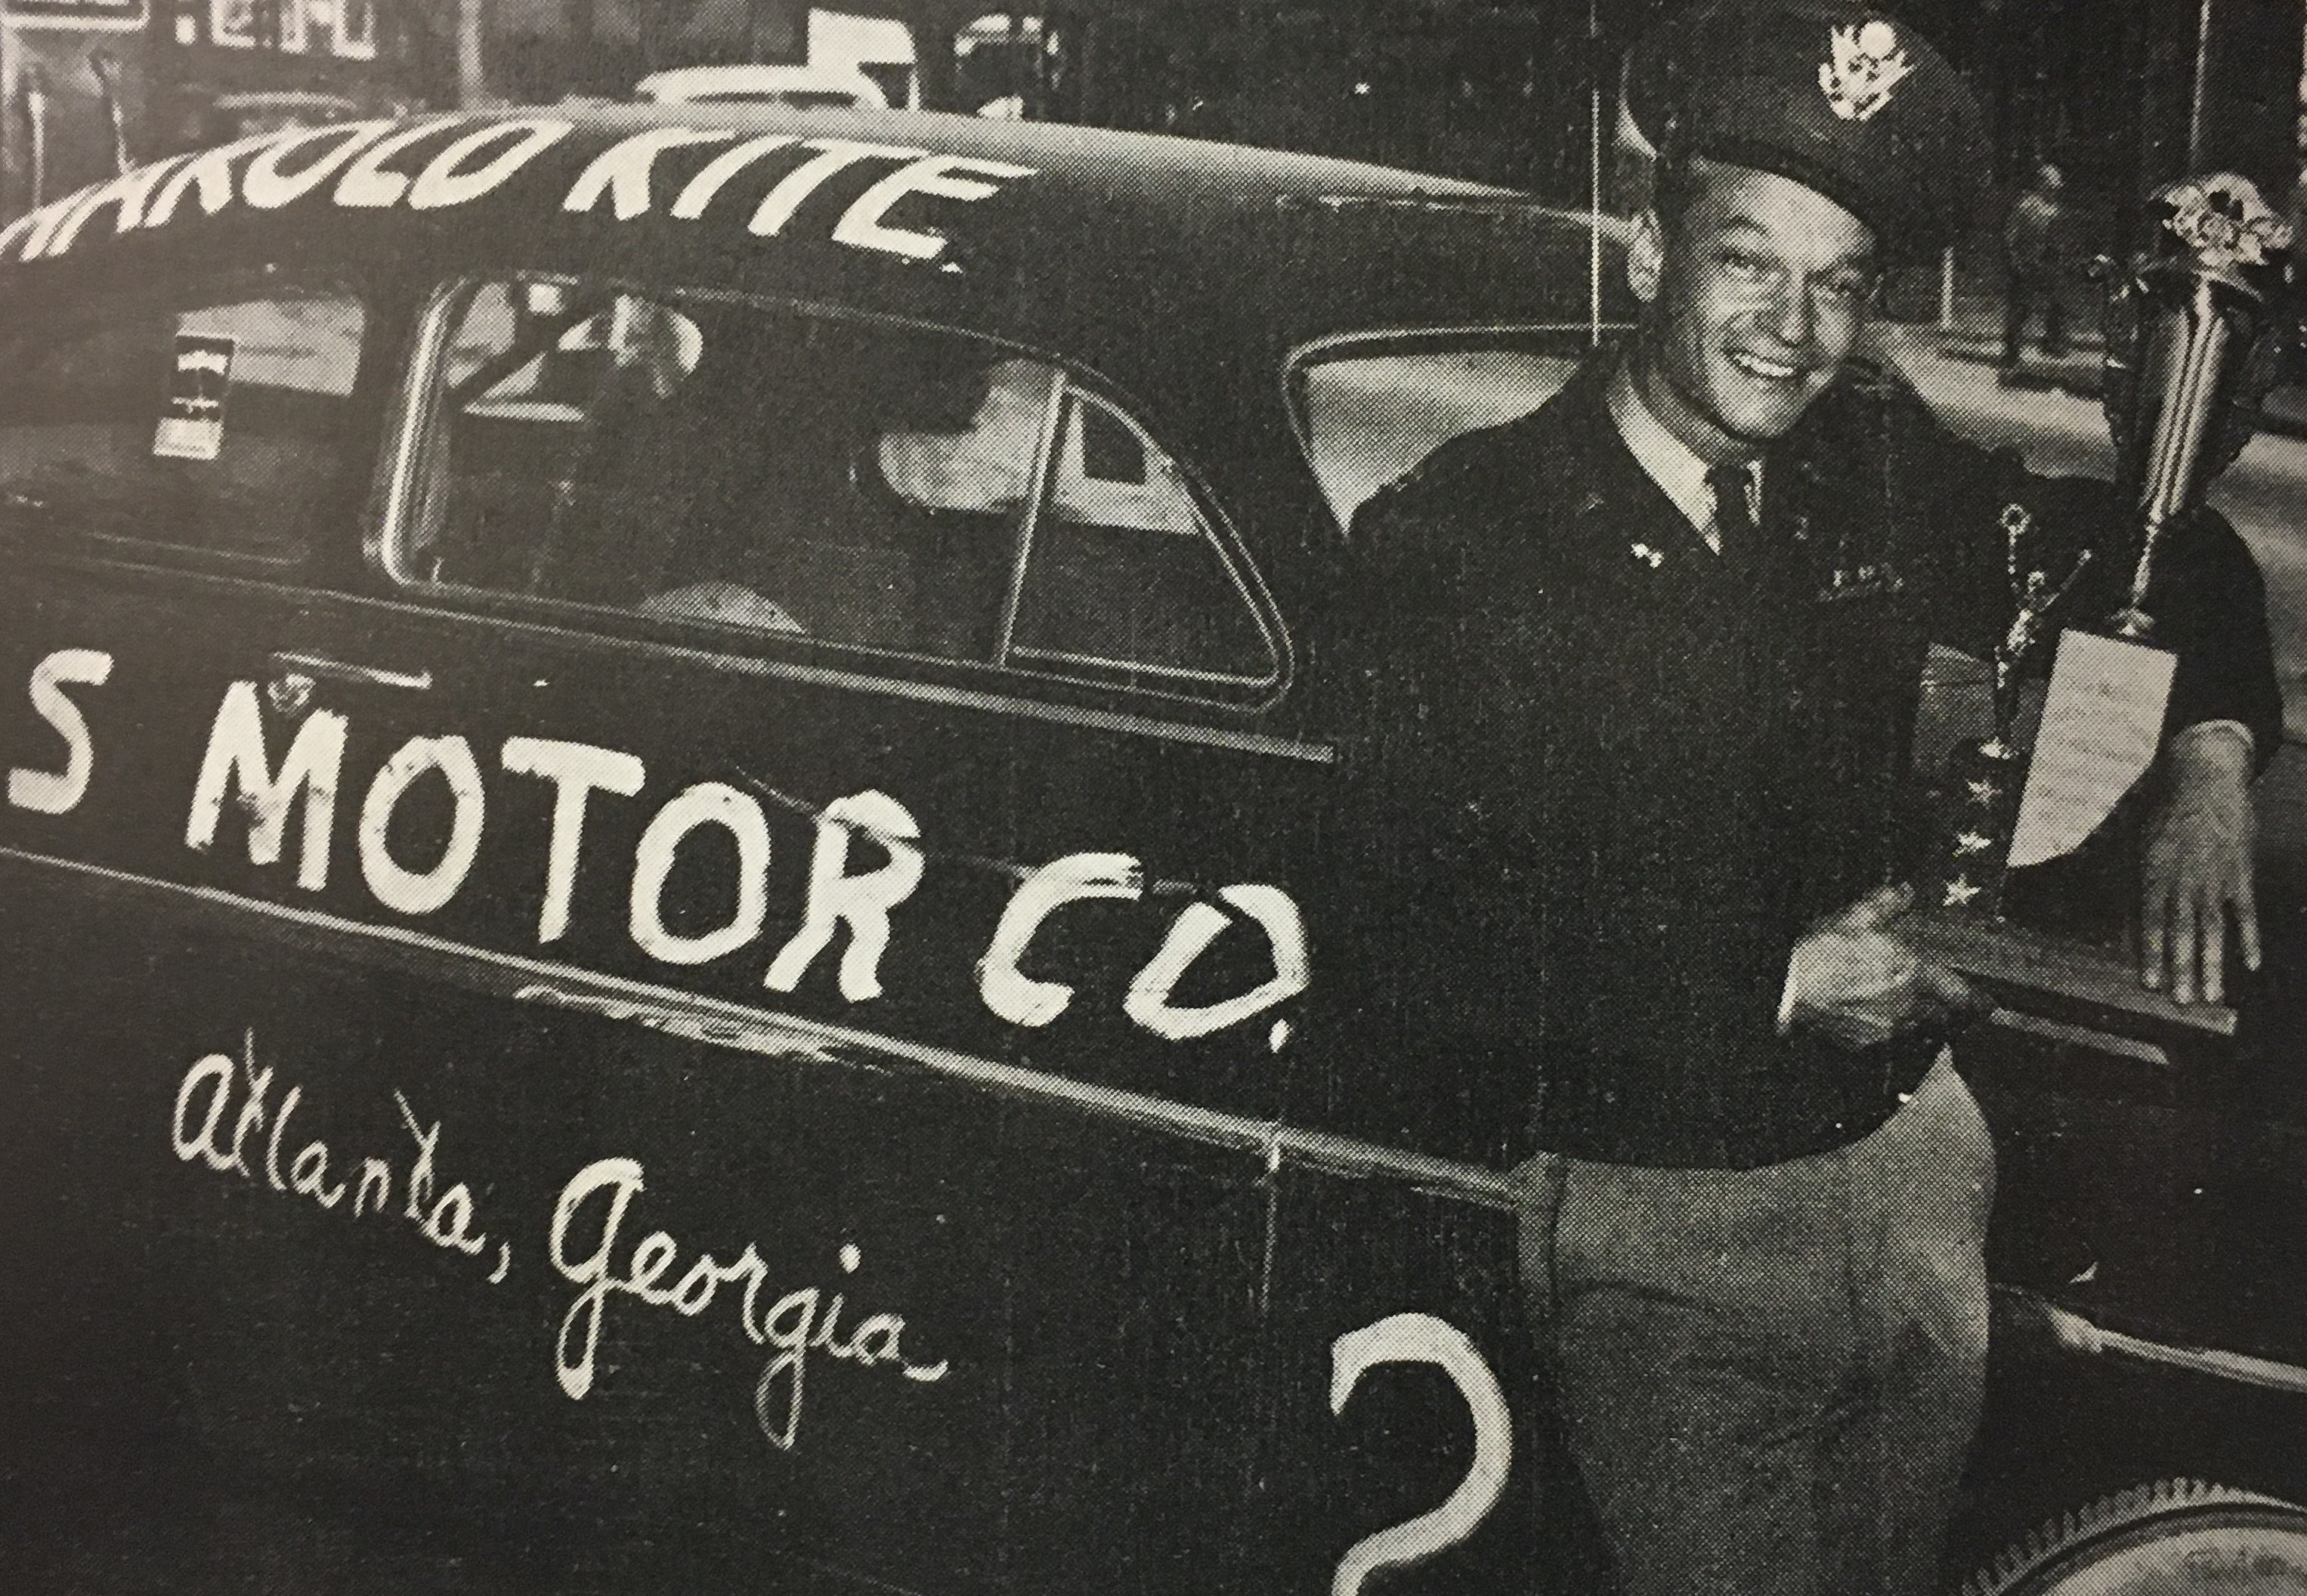 Georgia National Guard Soldier Won Daytona In 1950 Article The United States Army